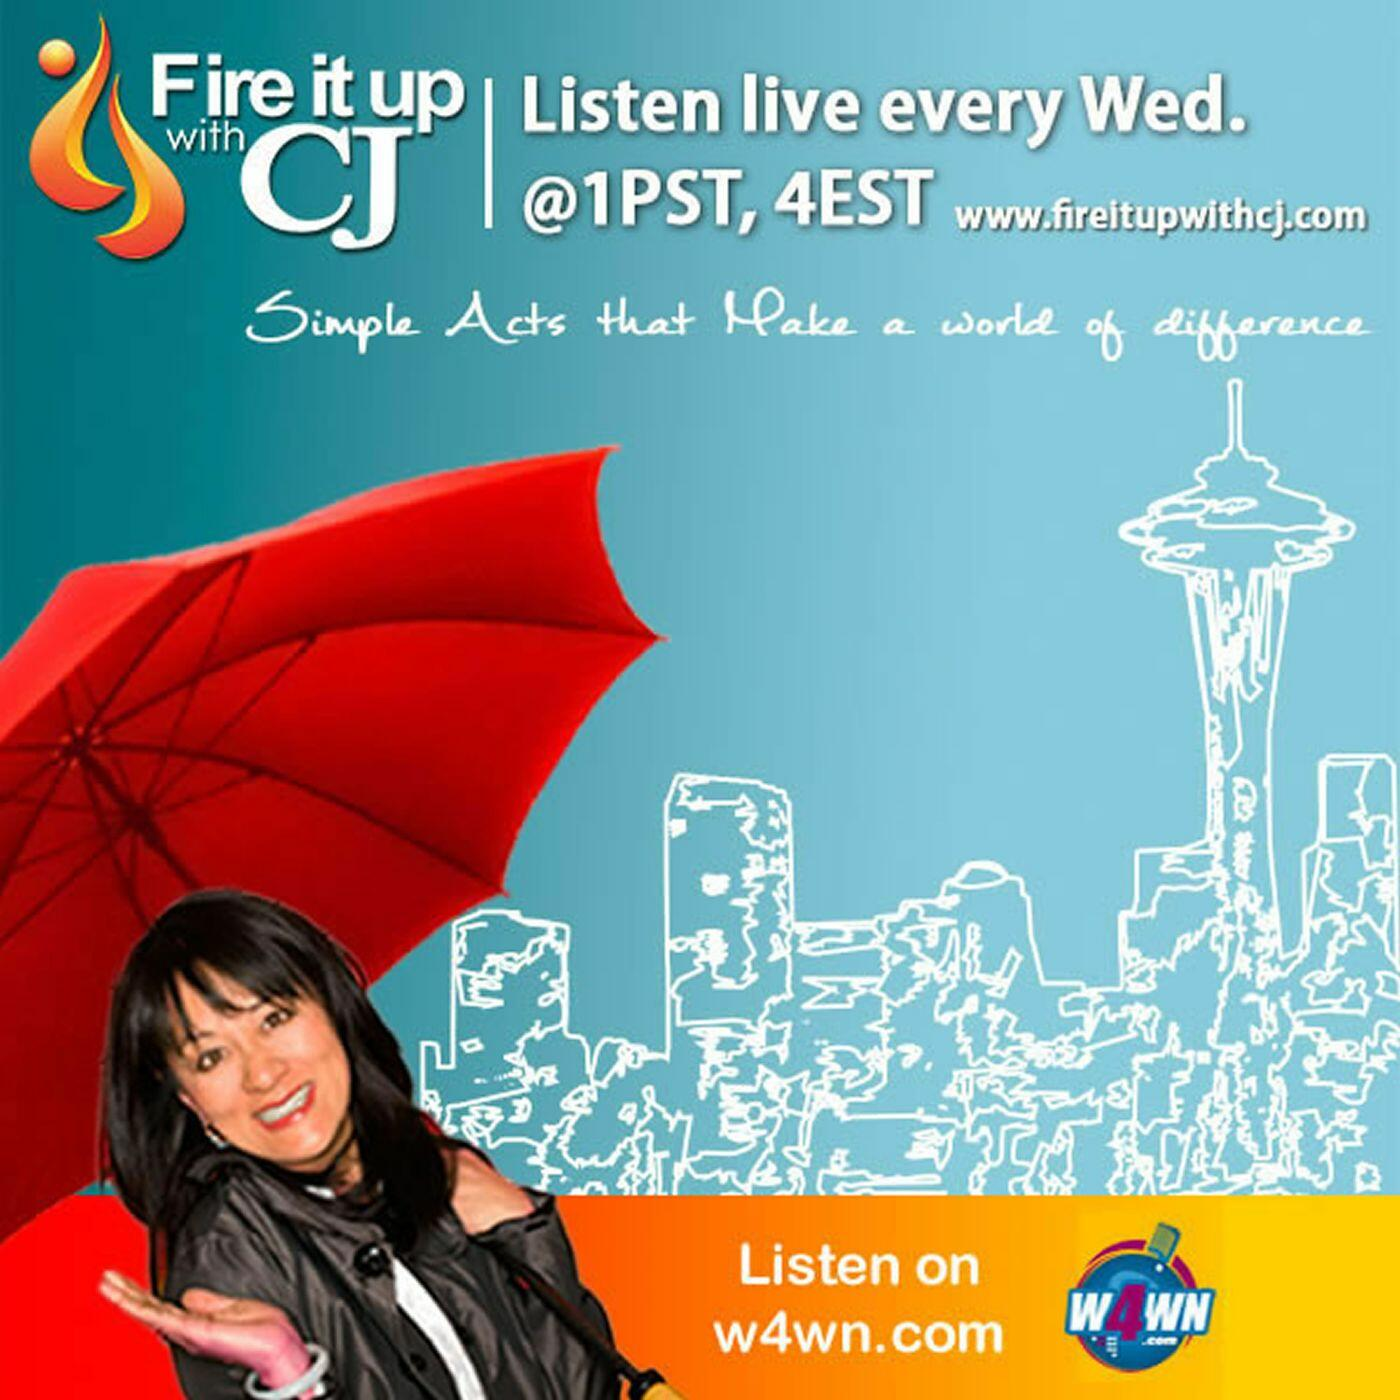 Listen to Shamanism: Summon the Spirit of the Wind | Fire it up with CJ | Podcasts